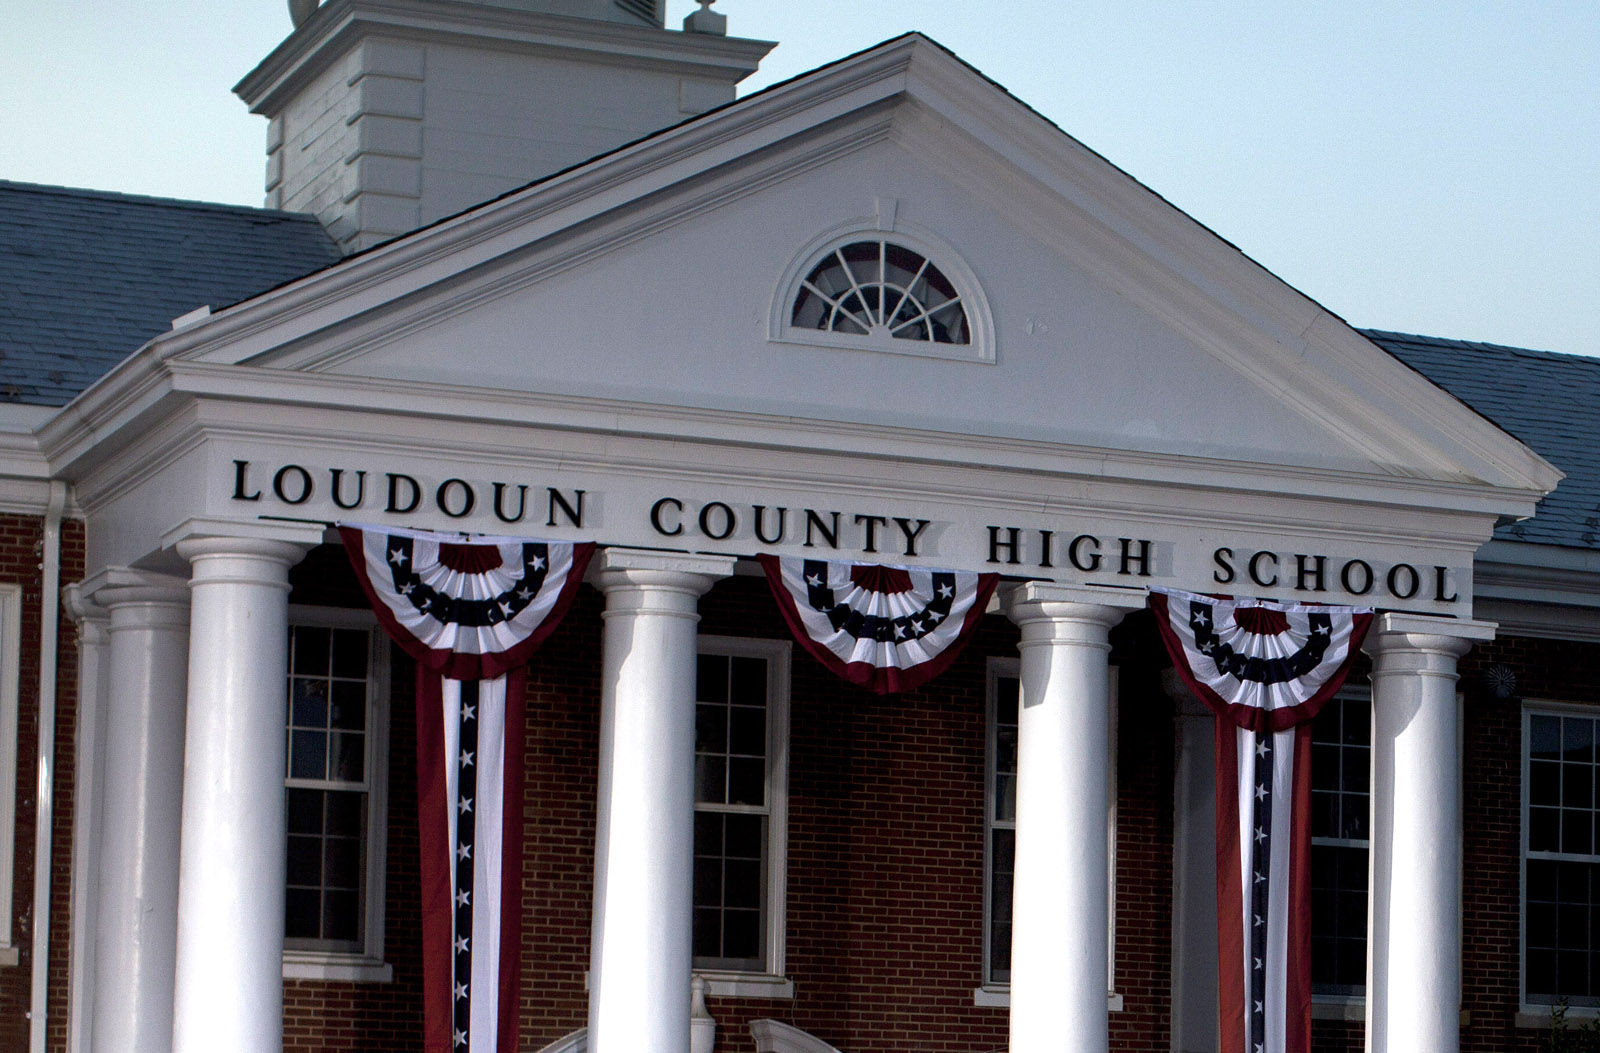 Loudoun County High School is seen in this 2012 file photo. Allison Briel, 25, of Leesburg, Virginia — a marketing education teacher at Loudoun County High School— is facing three misdemeanor charges after inappropriately communicating with students. (AP Photo/Evan Vucci)